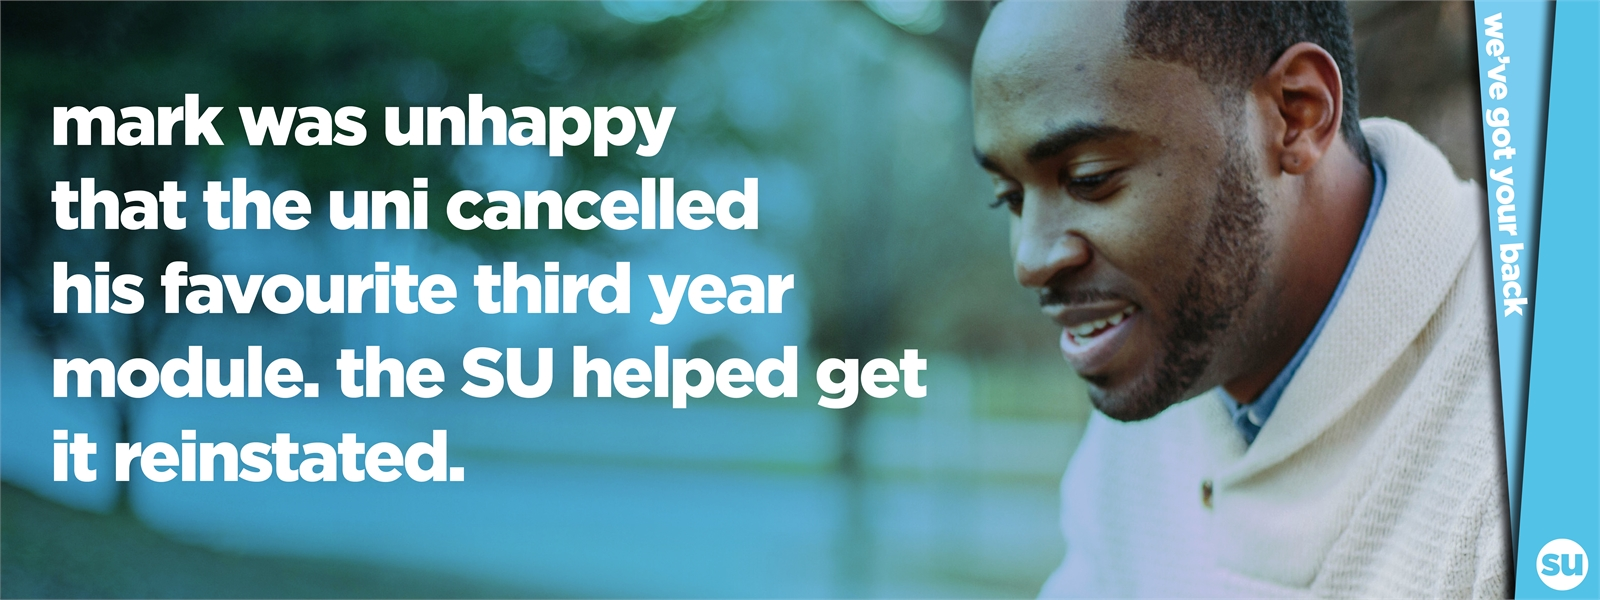 mark was unhappy that the uni cancelled his favourite third year module. the su helped get it reinst